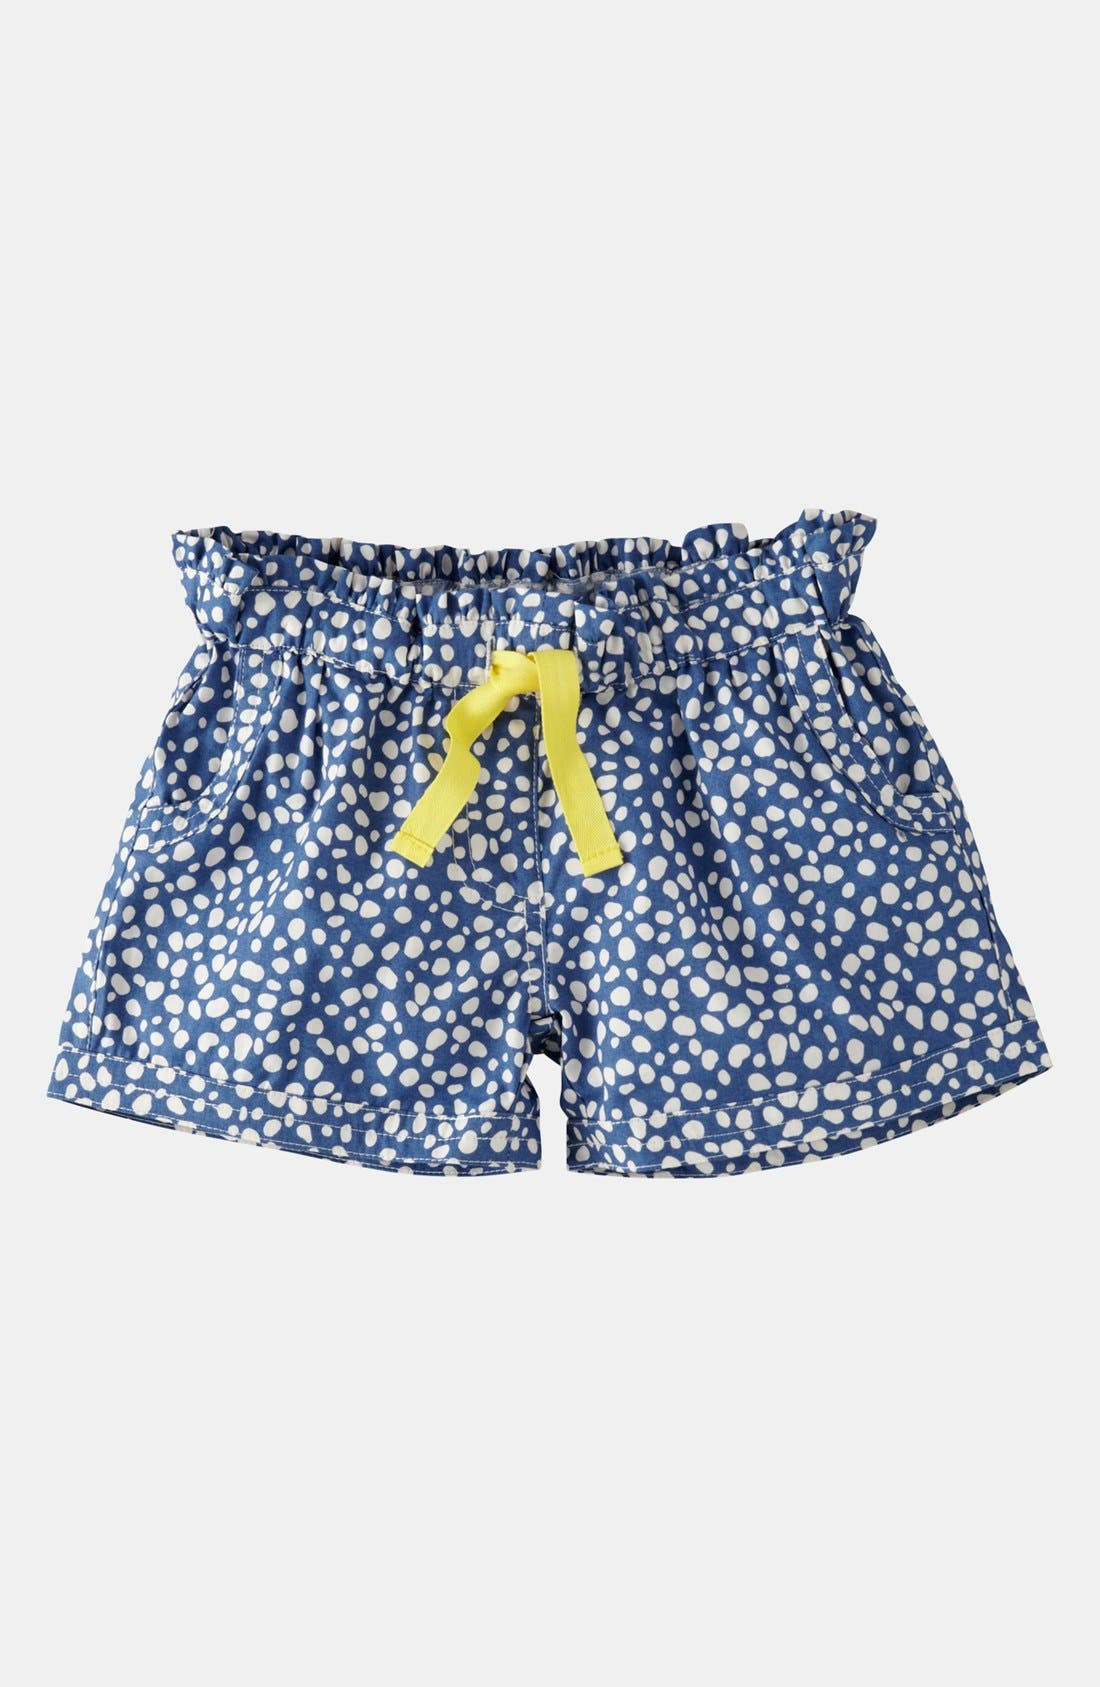 Main Image - Mini Boden 'Spotty Holiday' Shorts (Toddler)